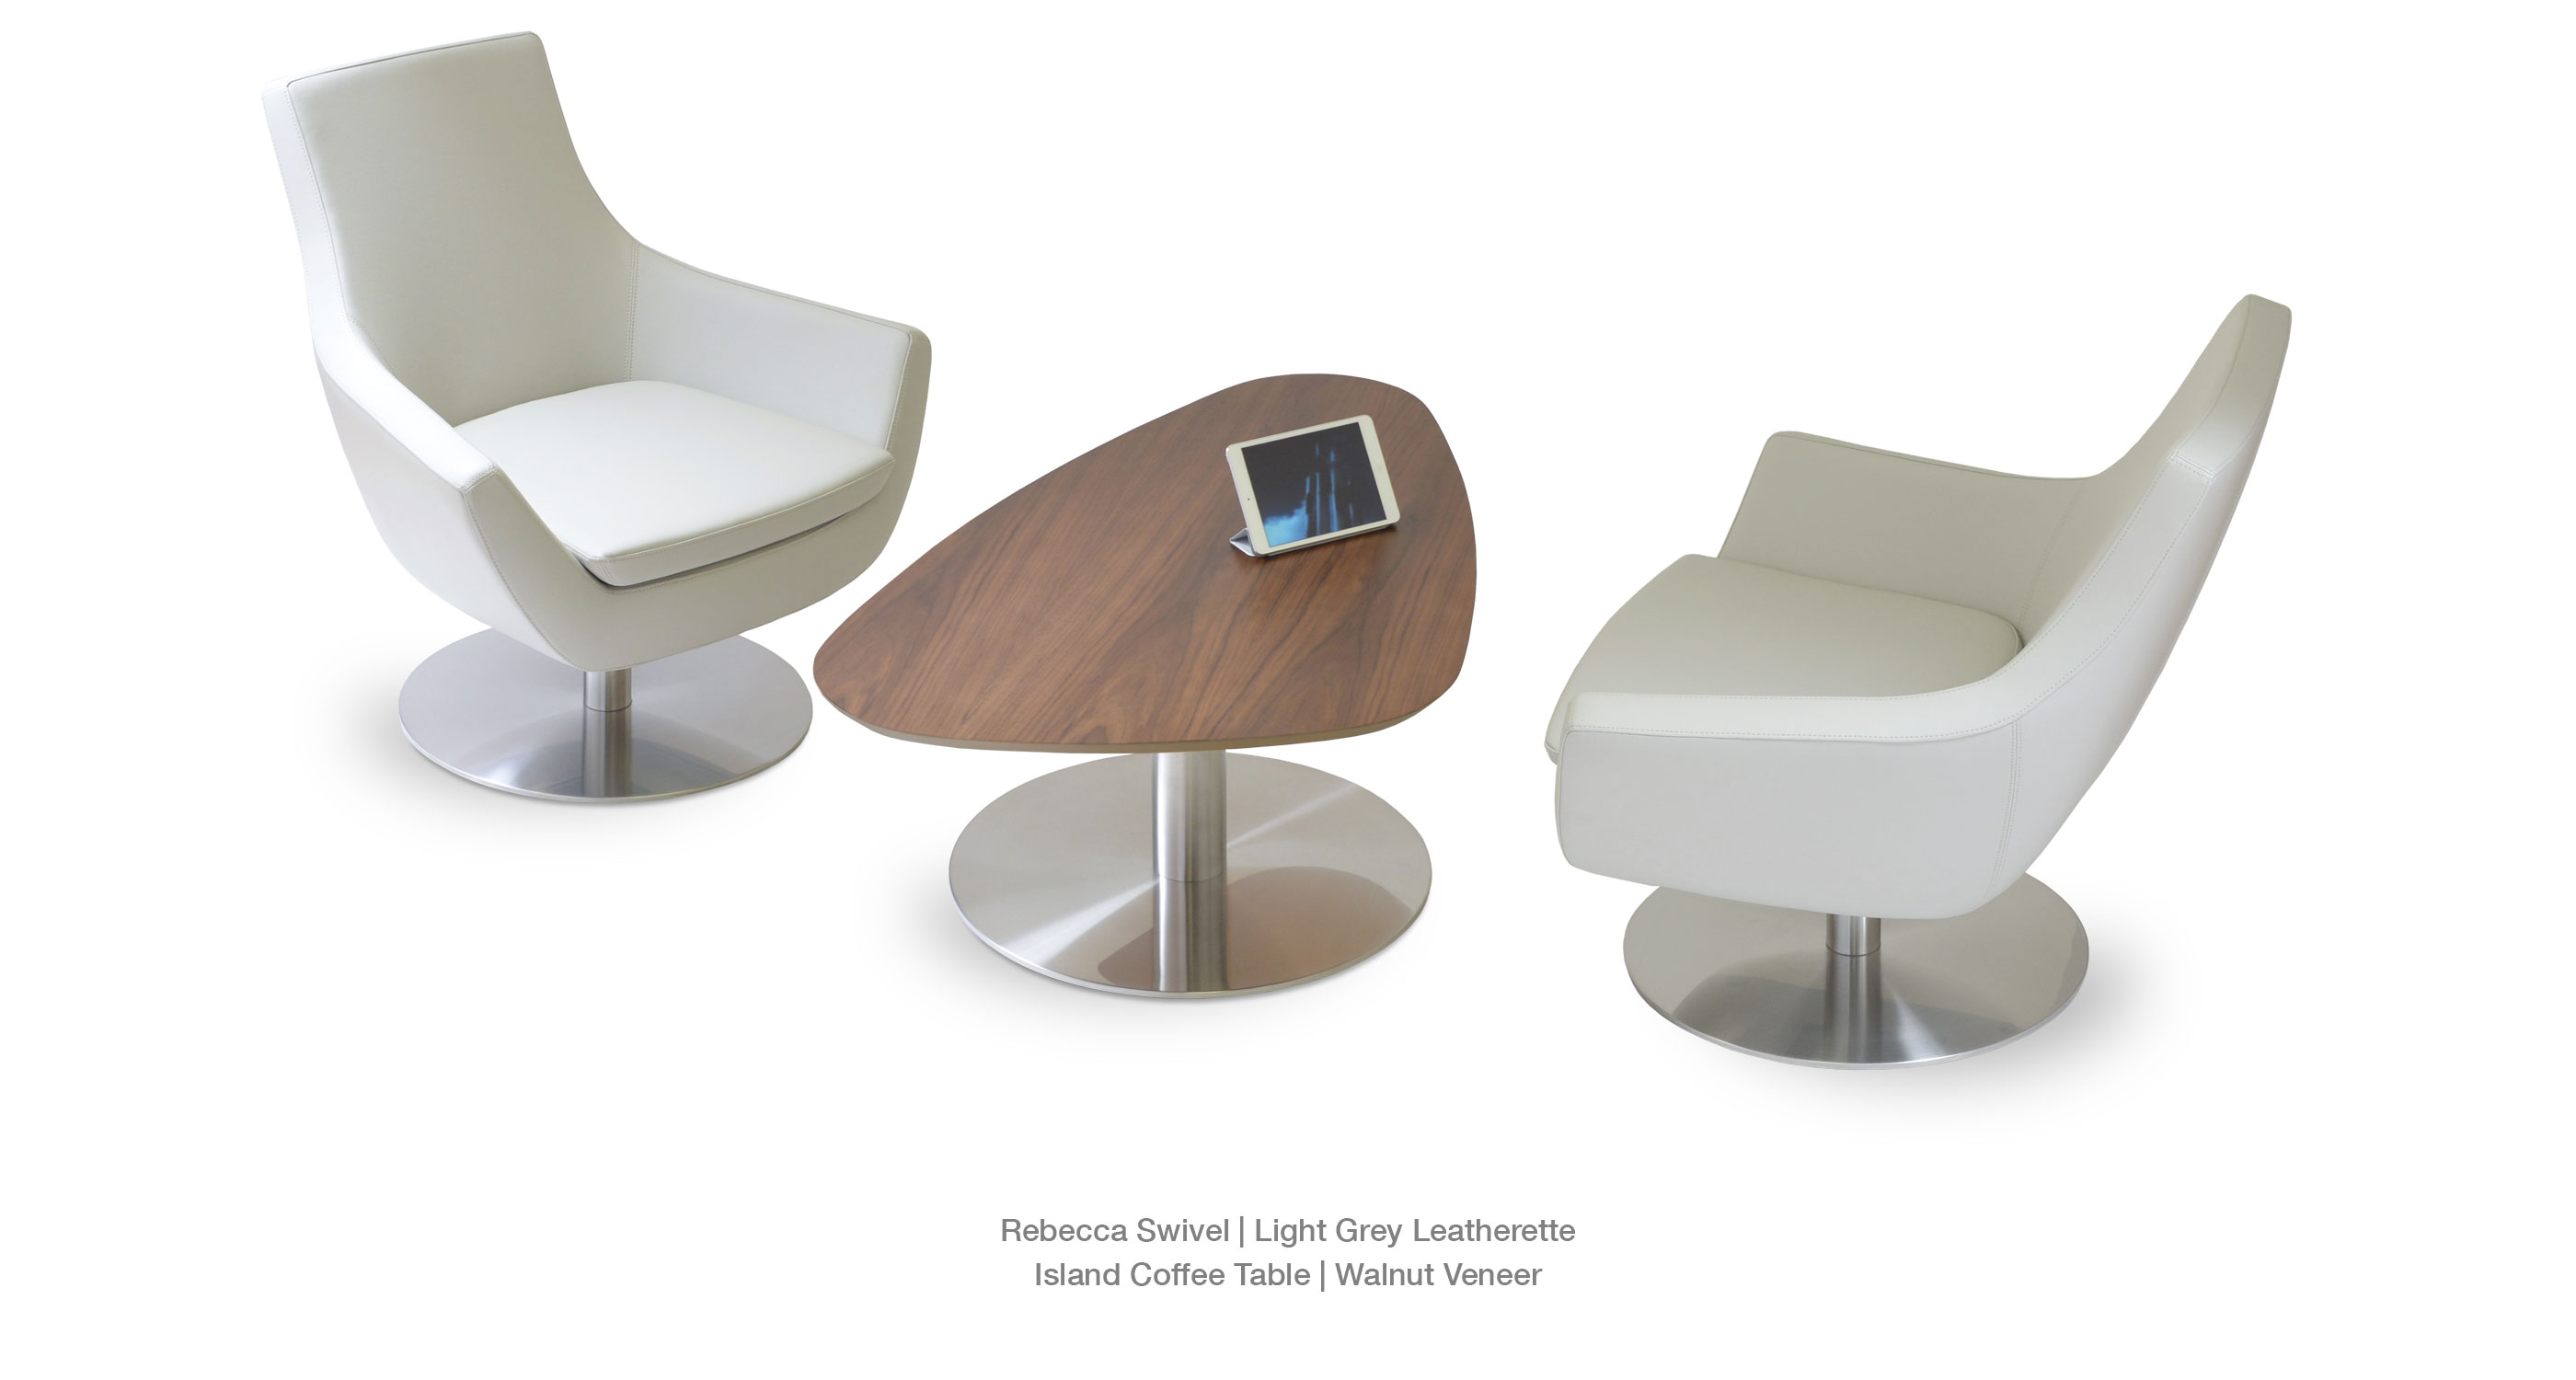 Rebecca Swivel light grey - Island Coffee